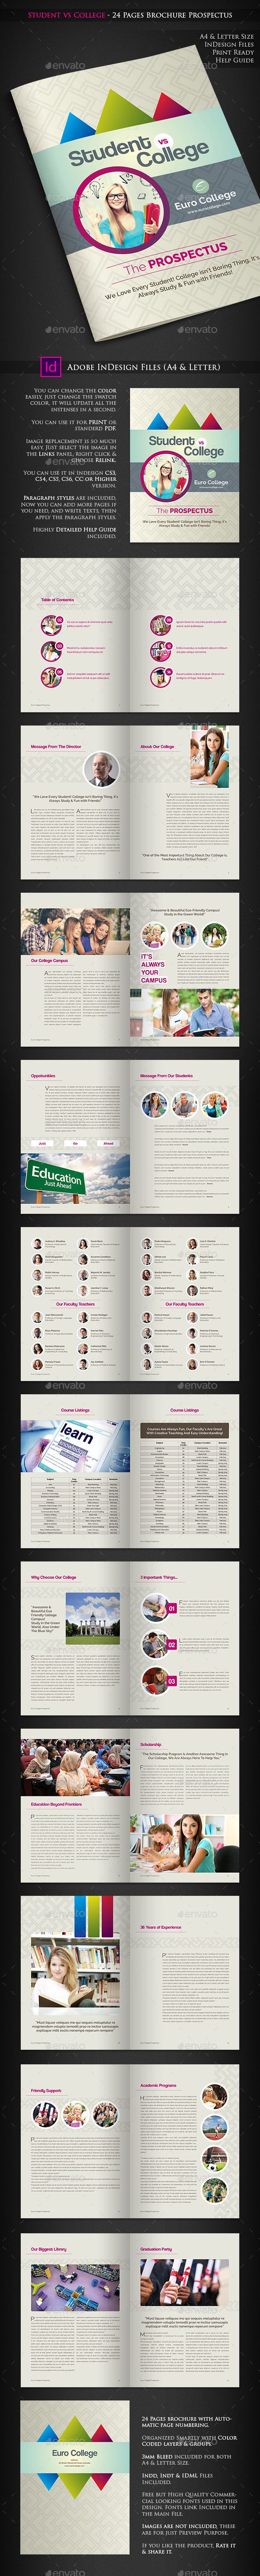 Best Education Brochures Images On   Brochures